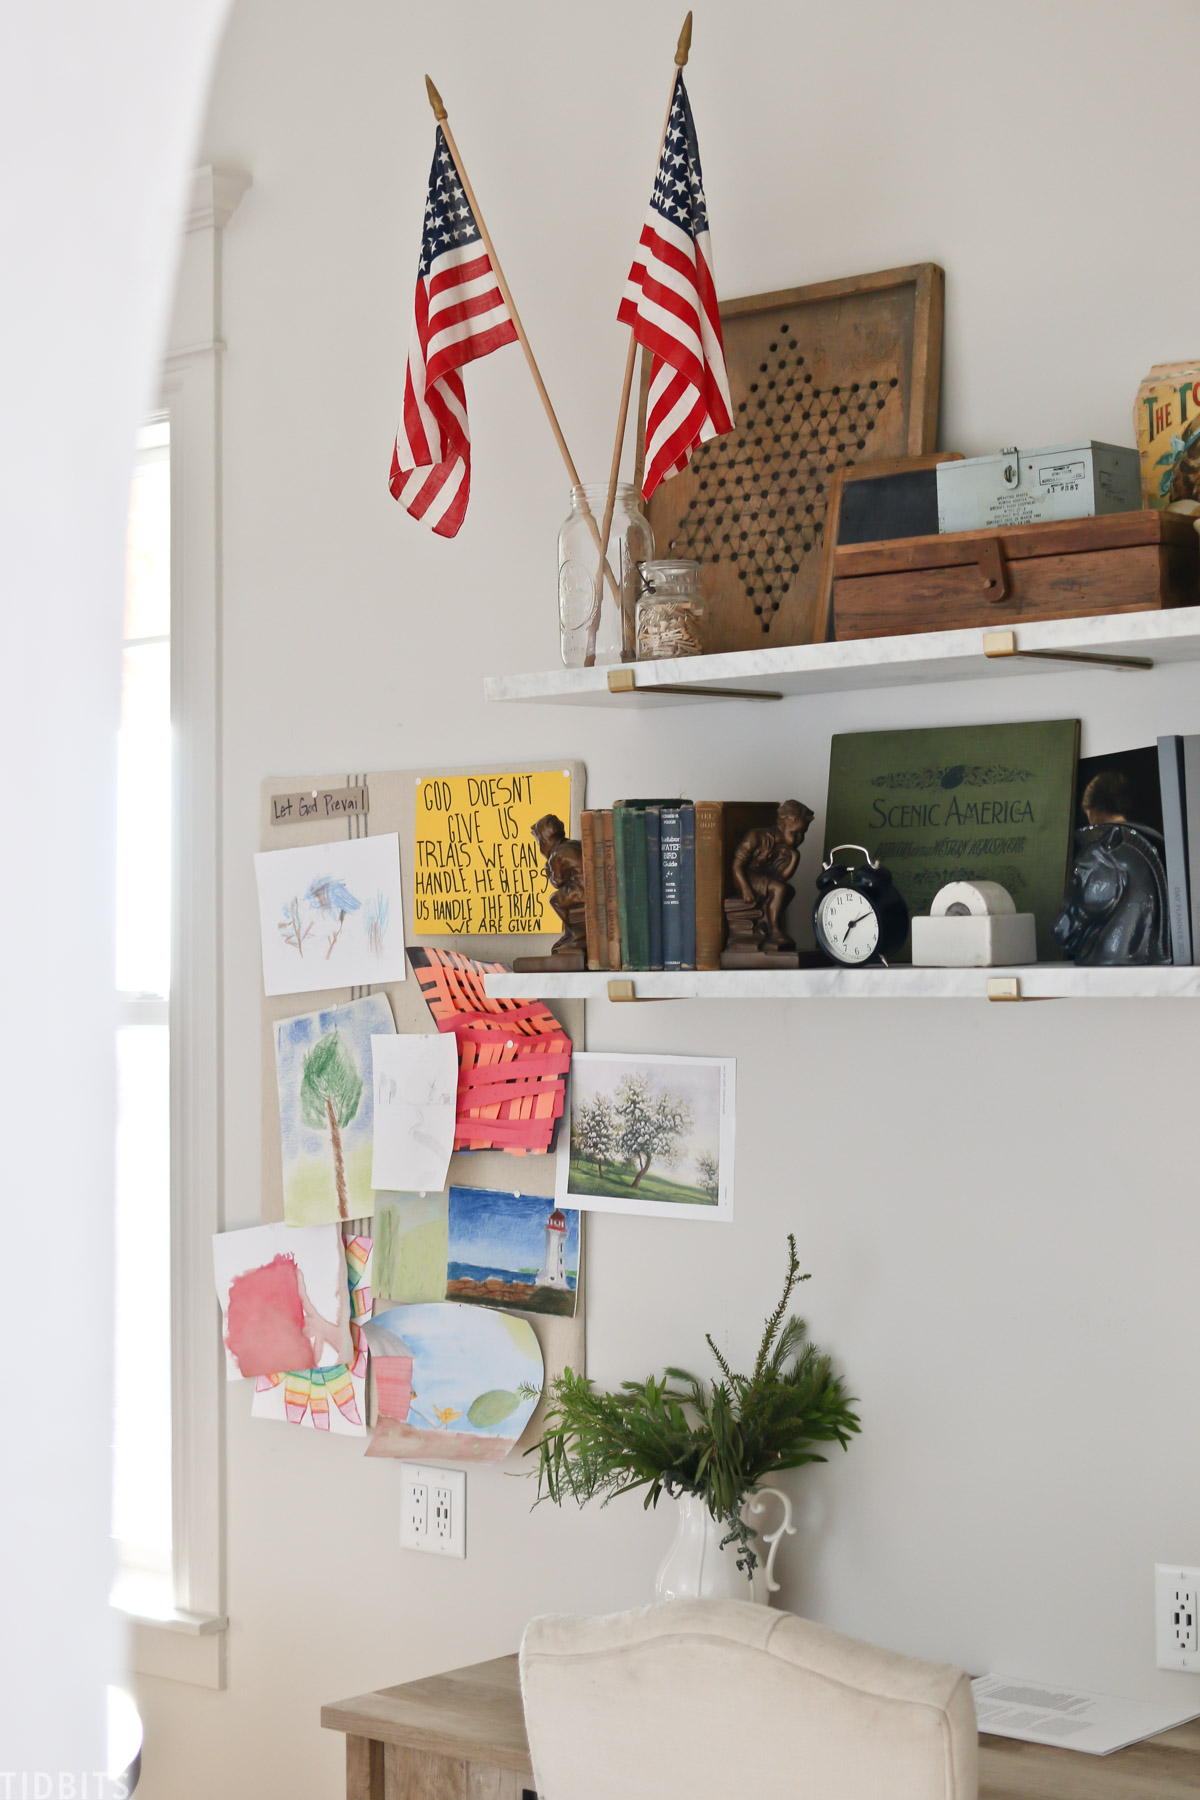 desk with two bookshelves above it containing books and home decor decorations